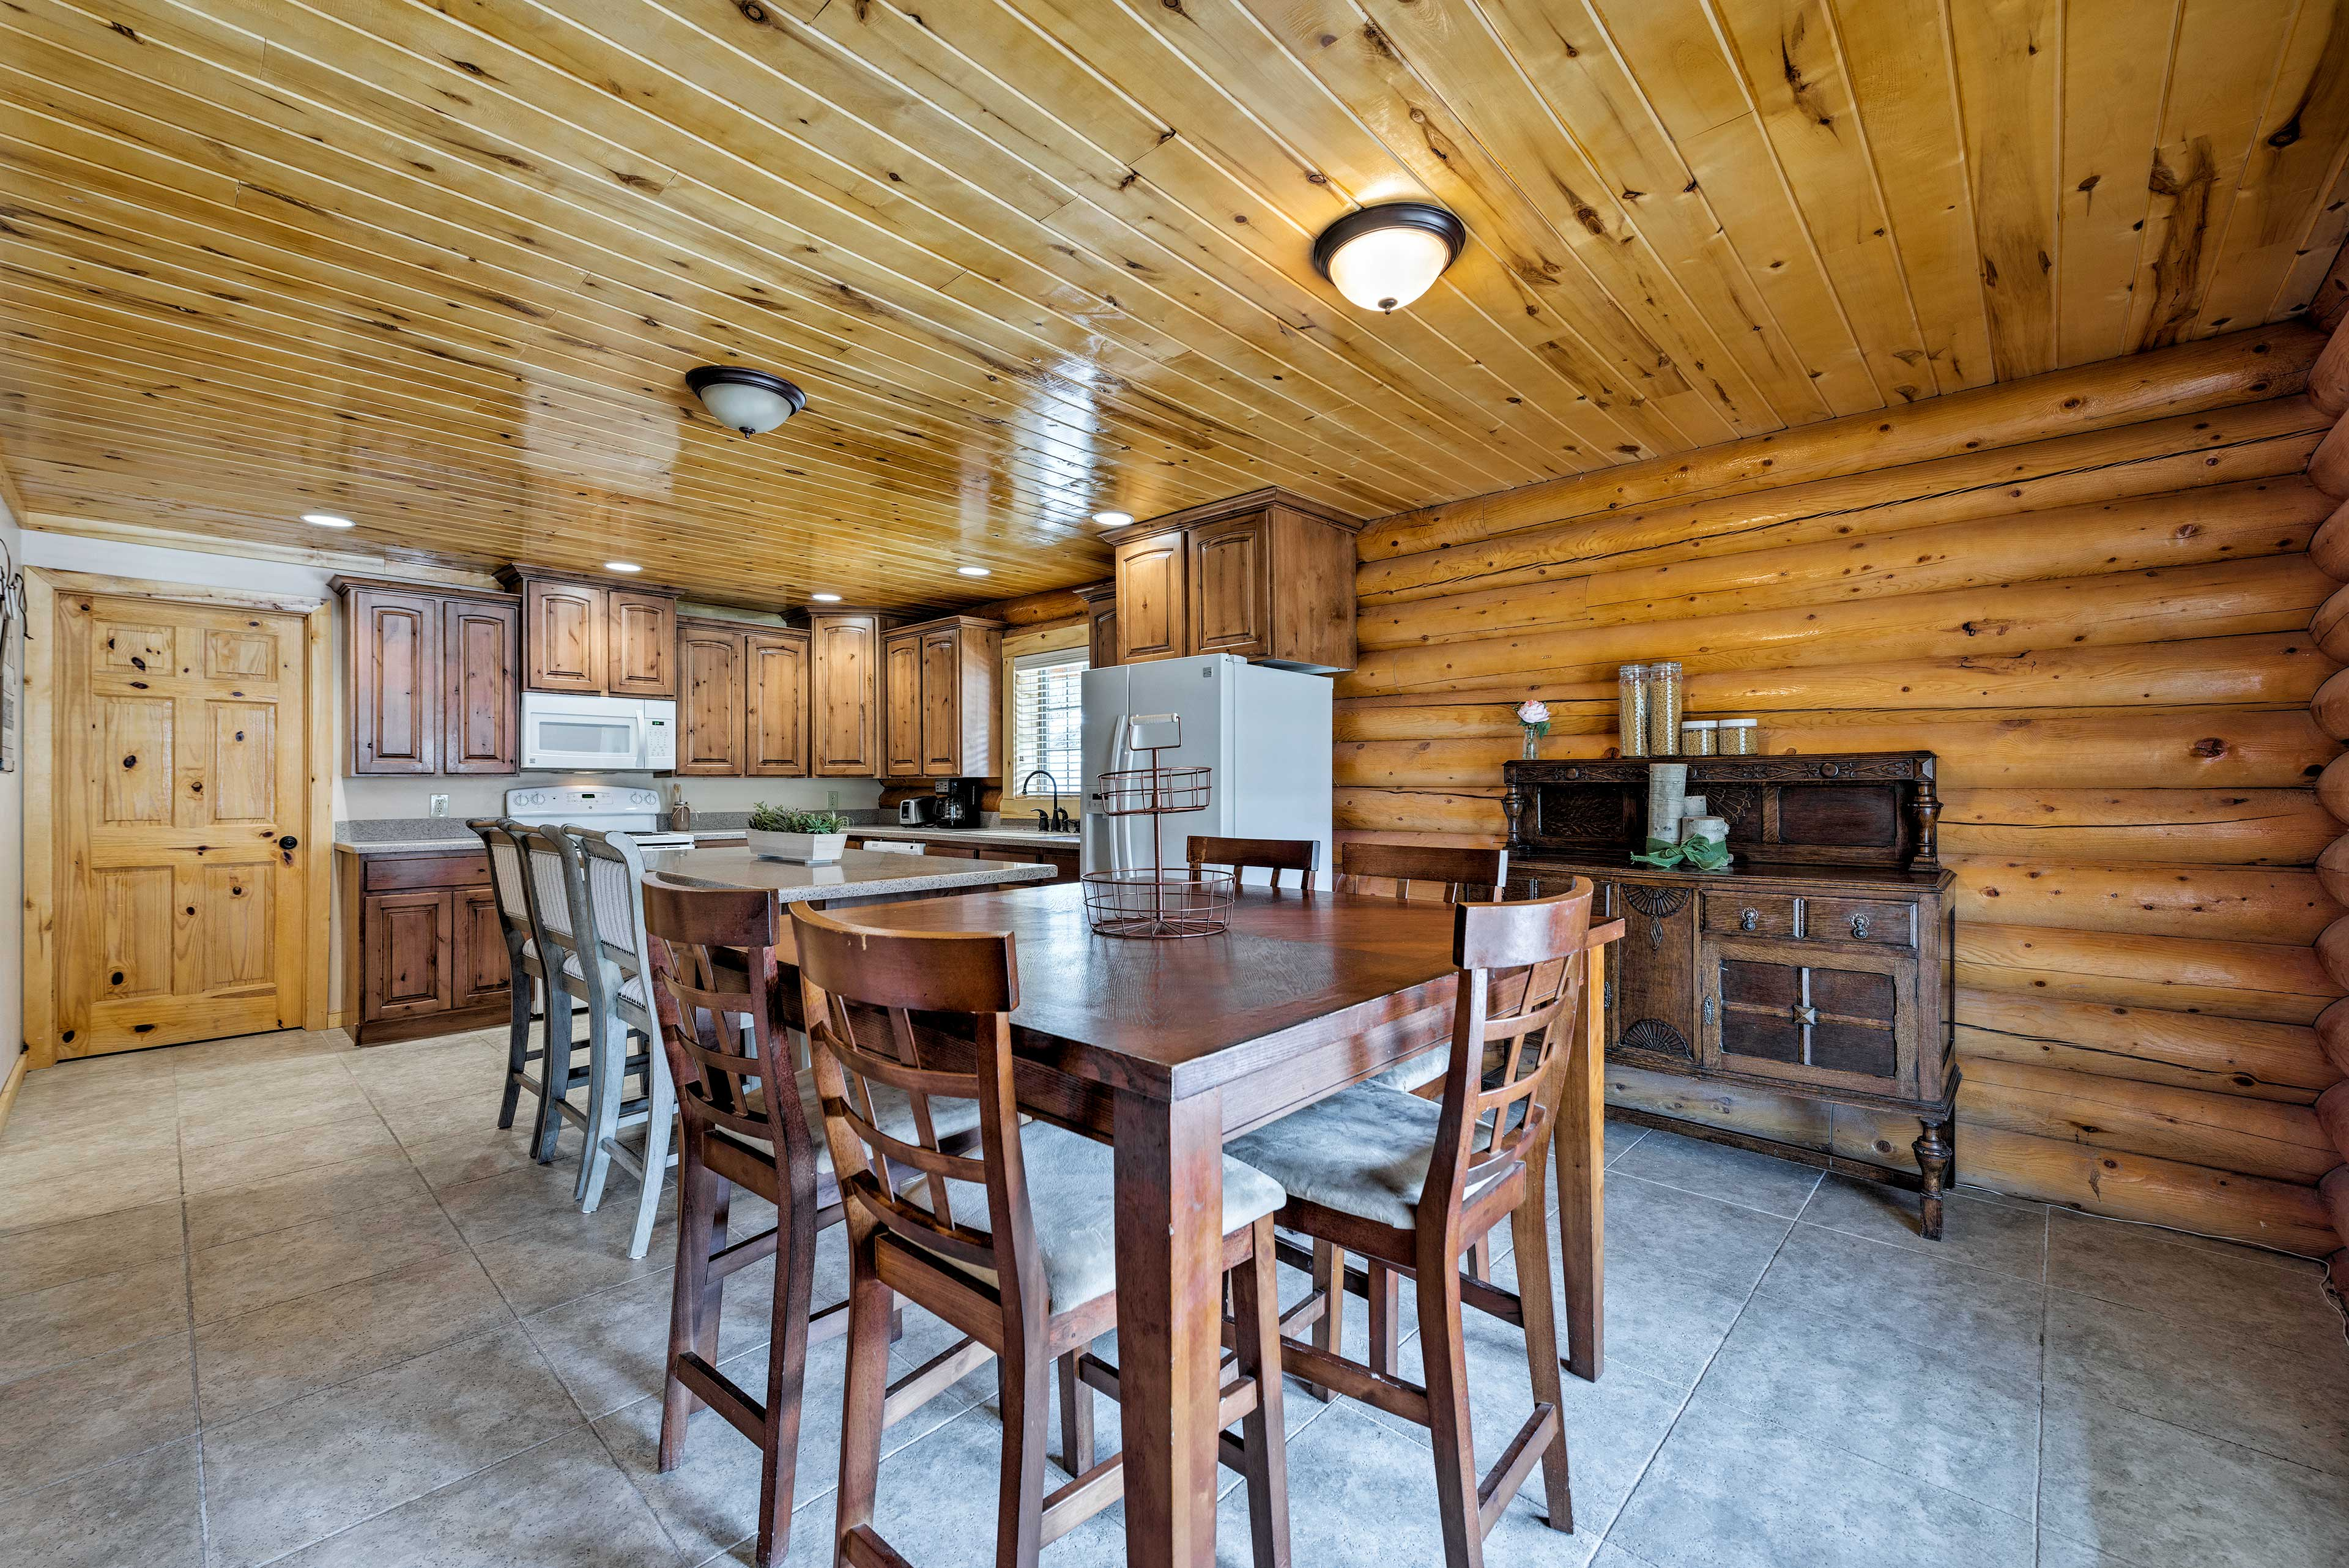 Enjoy family meals at the 4-person dining table or kitchen counter.